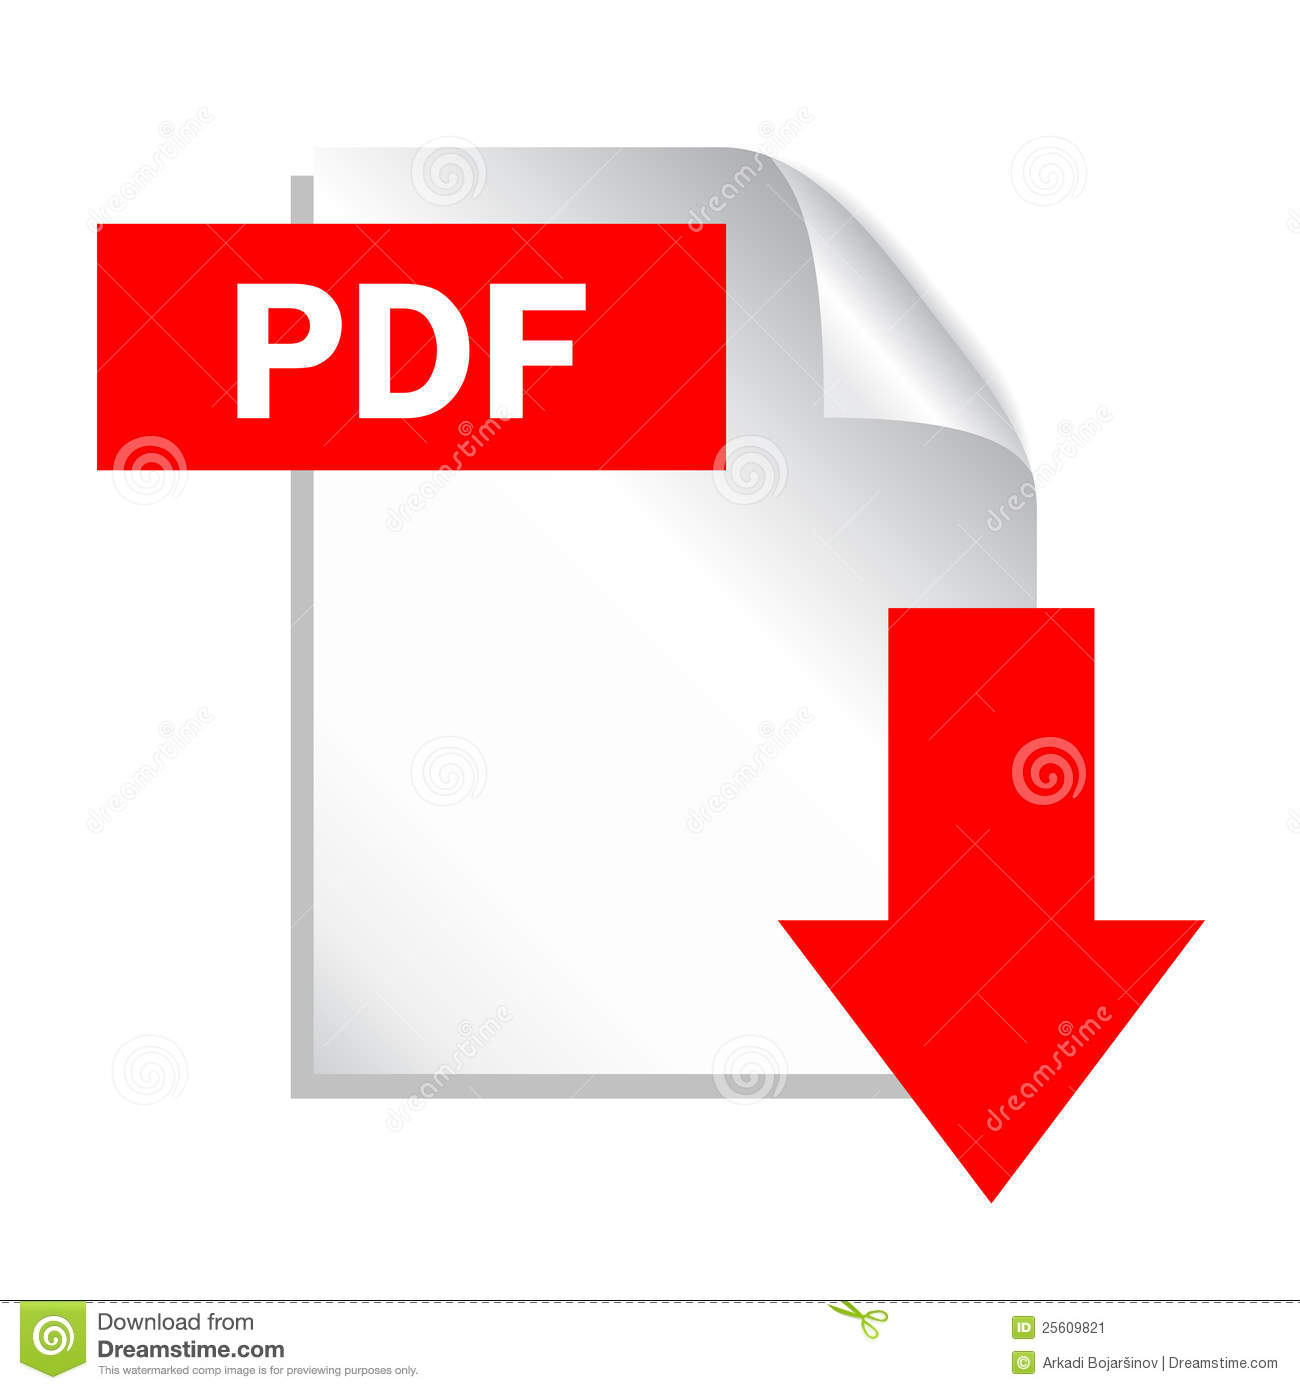 how to download images from pdf file